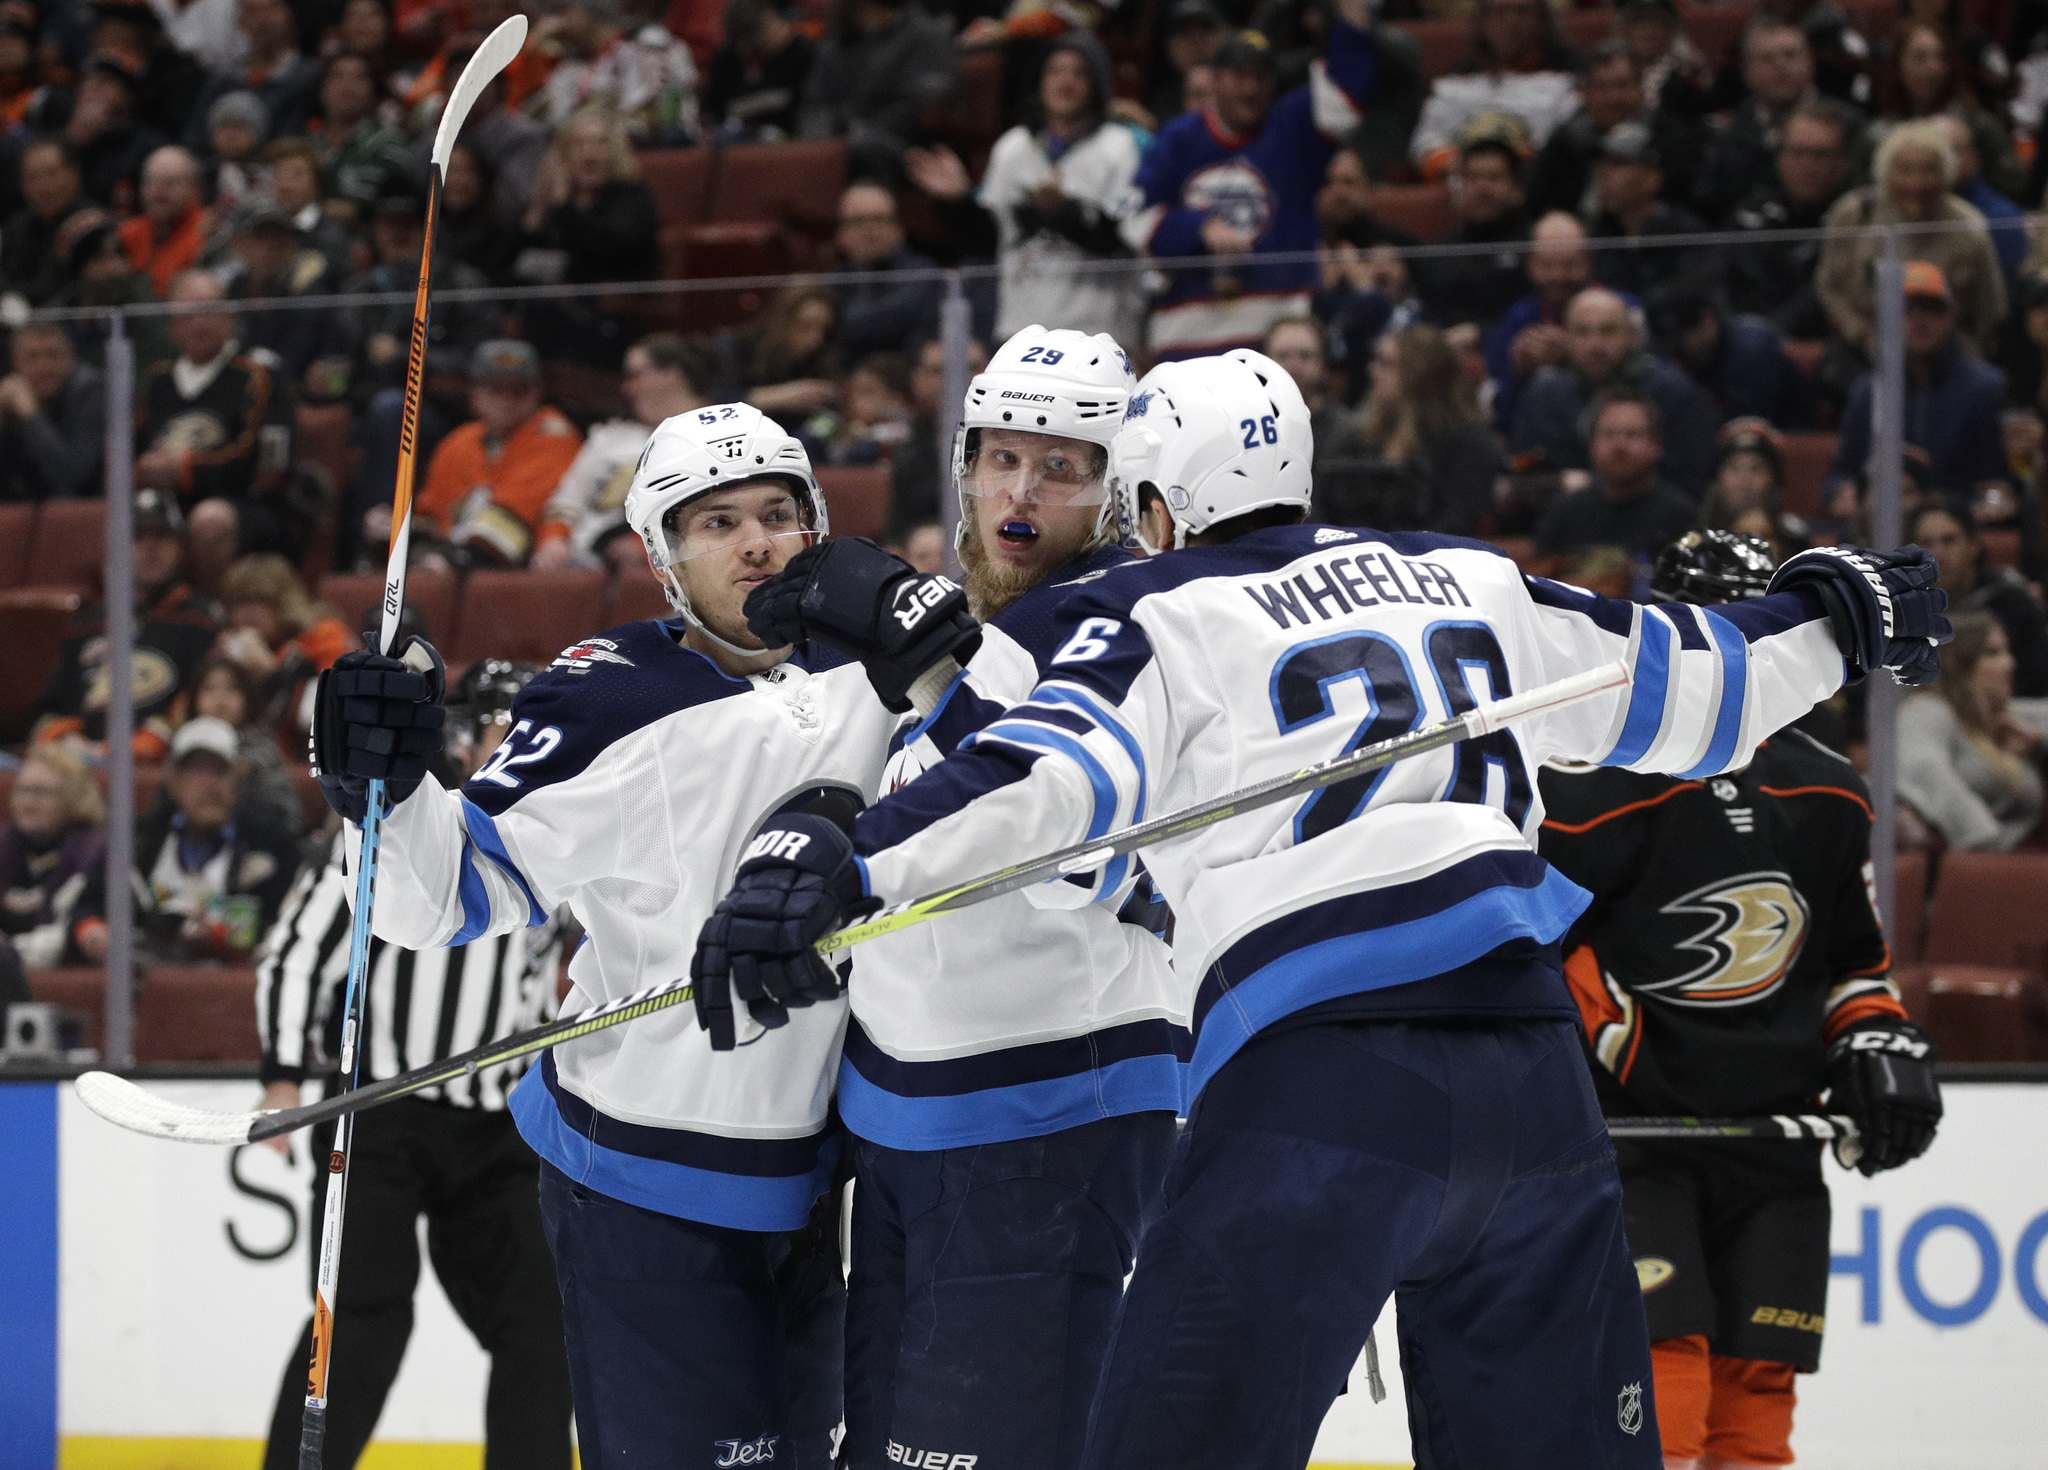 (AP Photo/Jae C. Hong)</p><p>Winnipeg Jets' Patrik Laine, centre, celebrates a goal with Blake Wheeler, right, and Jack Roslovic. The Jets have an embarrassment or riches when it comes to scoring depth in their forward core with three lines that can all be a threat to put the biscuit in the basket.</p>